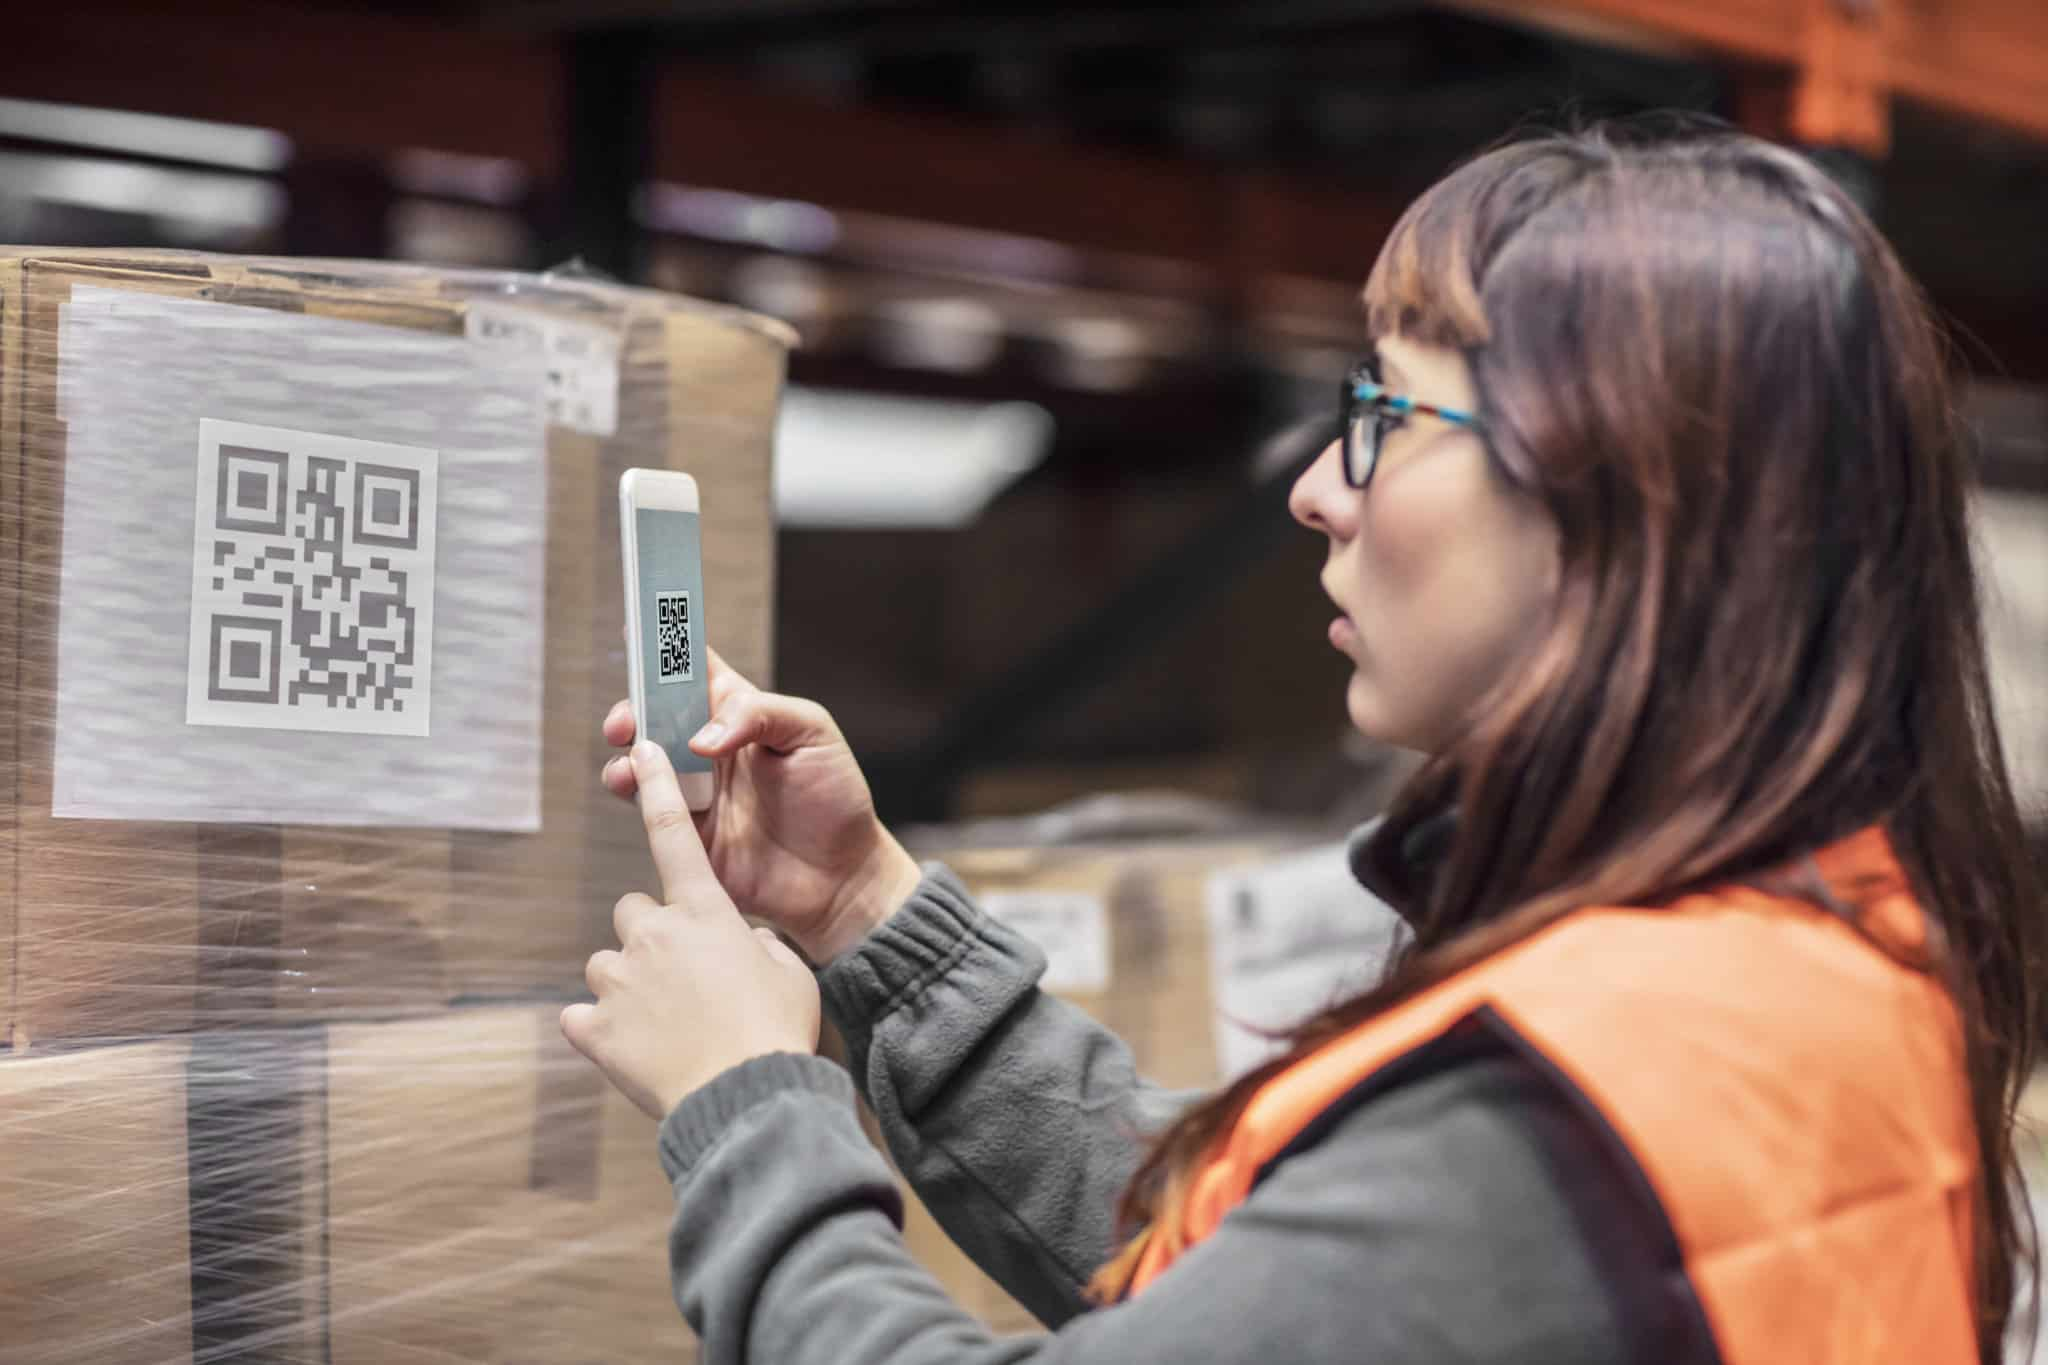 A woman in a visibility vest uses her phone to scan the QR code on a package.